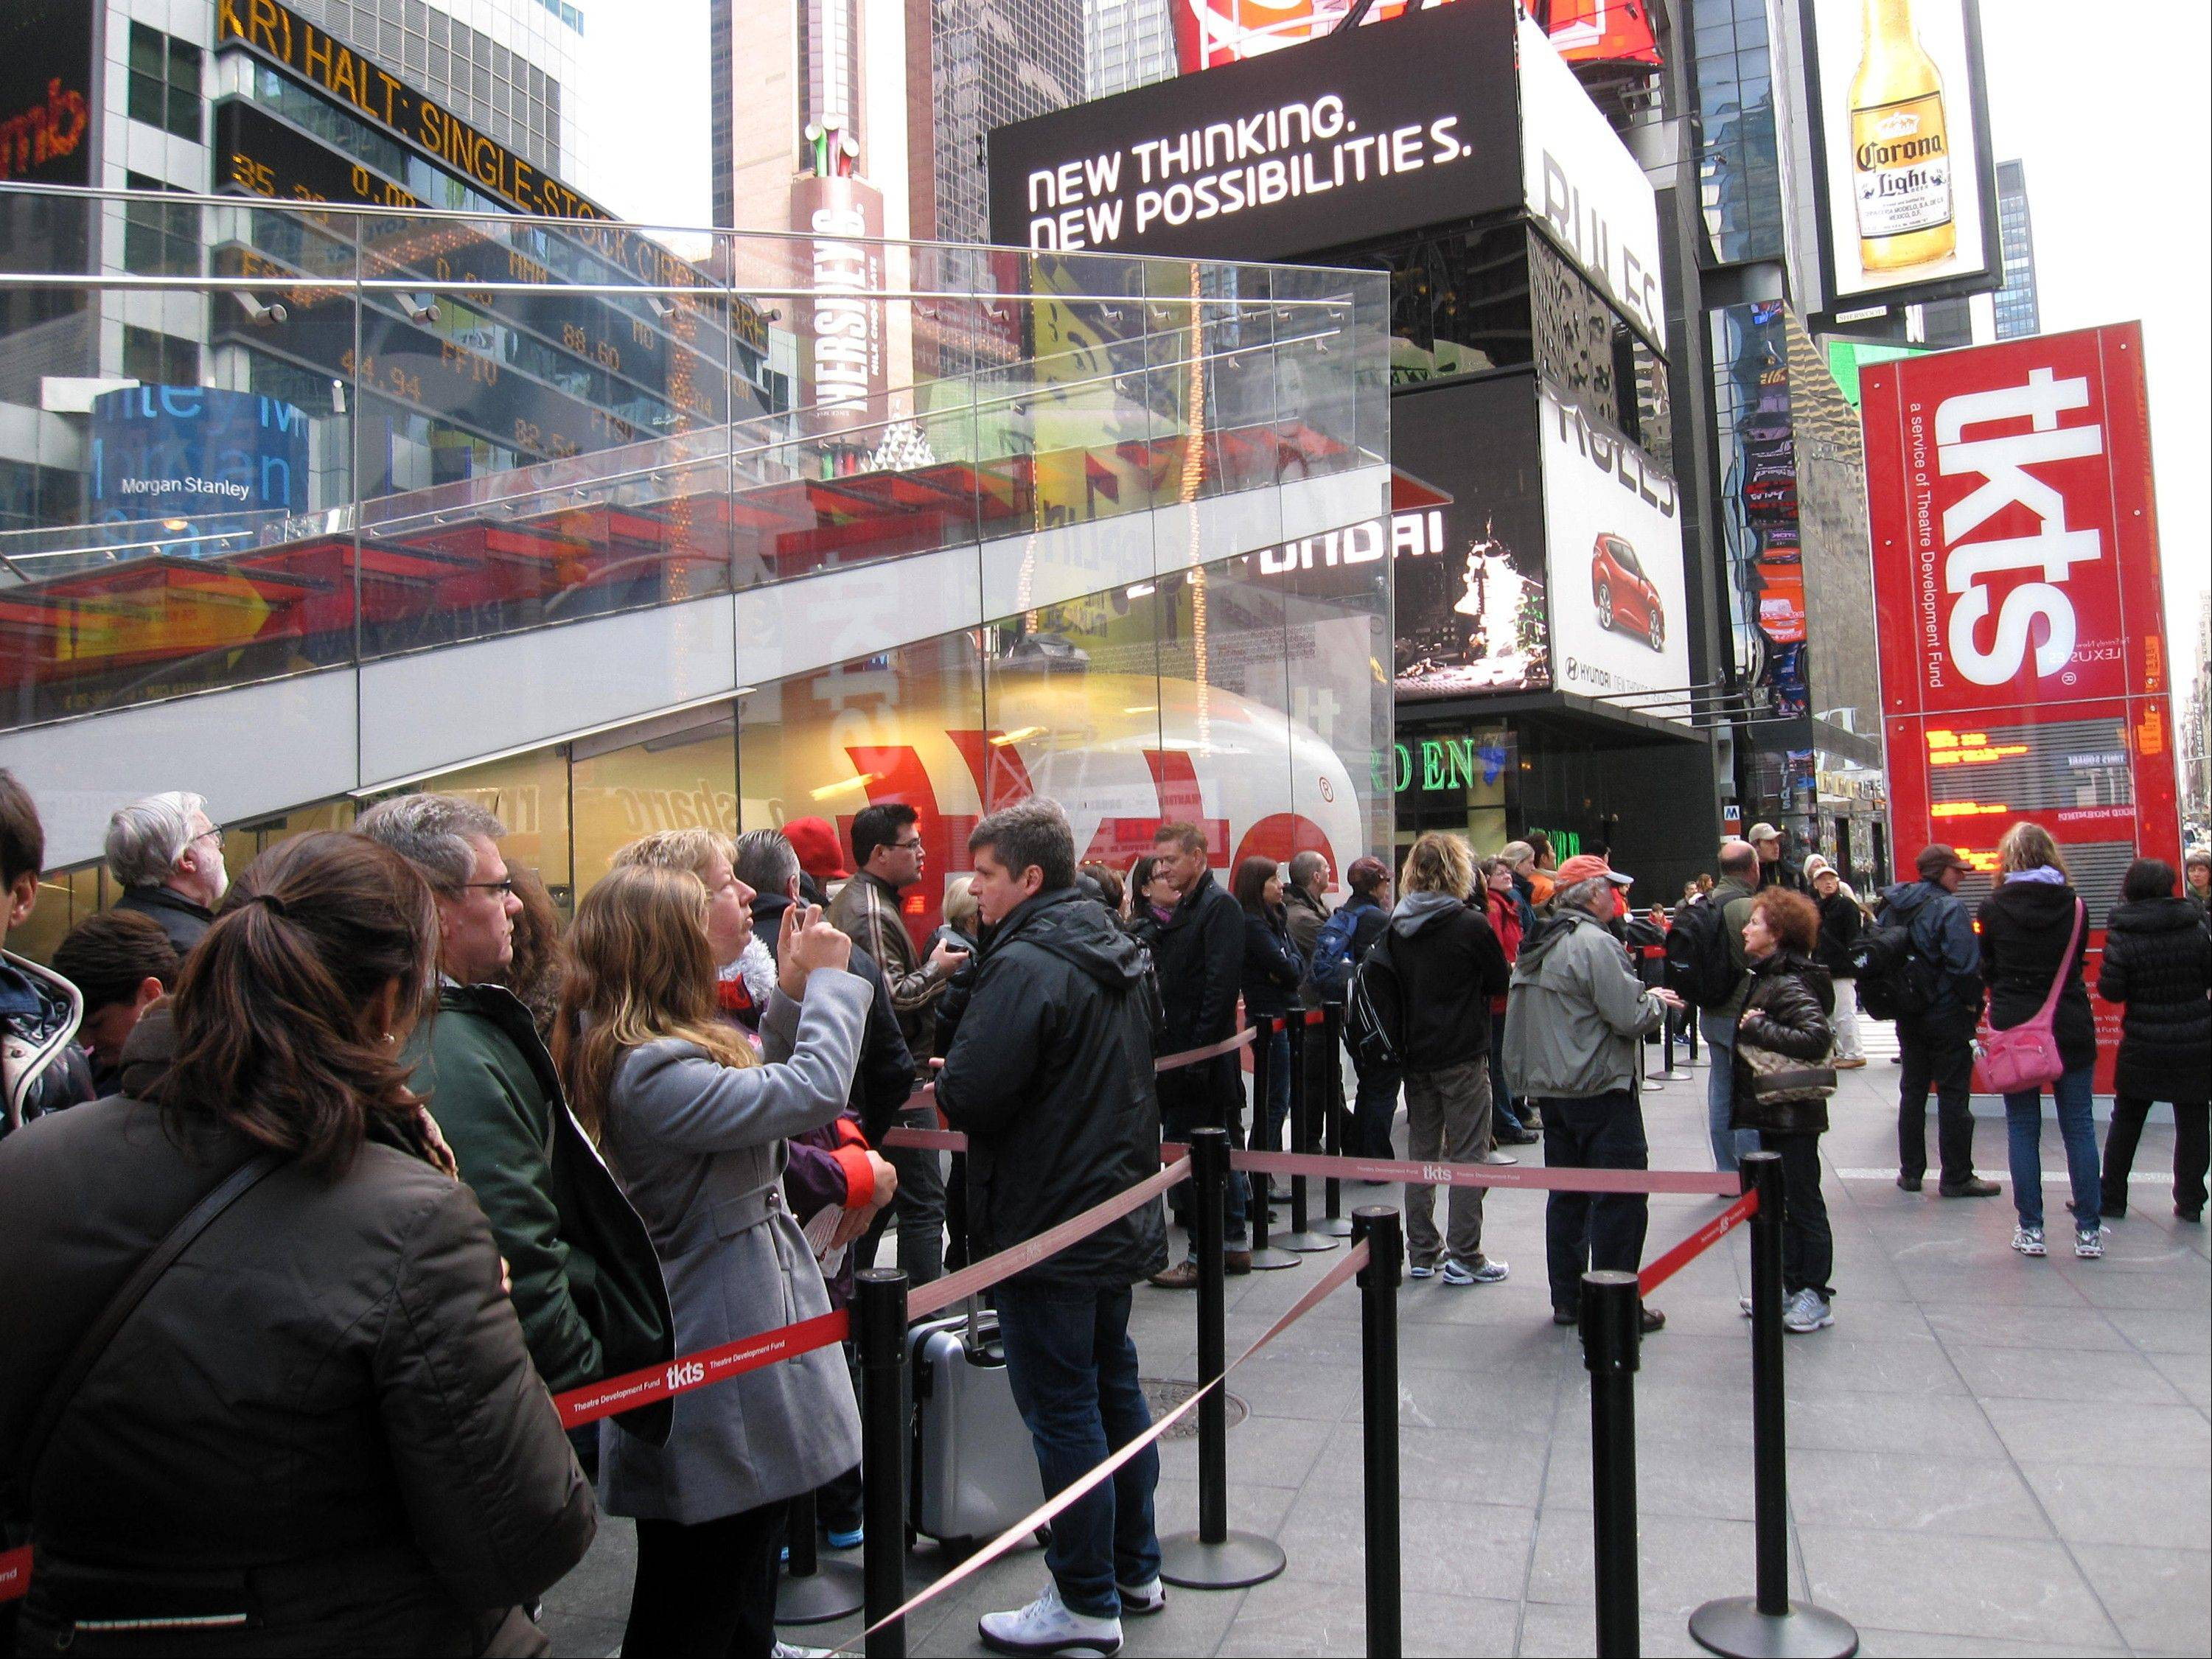 A line of ticket-buyers Wednesday wait at the TKTS booth, which sells discount tickets to Broadway shows in New York�s Times Square. Most Broadway theaters reopened Wednesday for regular matinee and evening performances following several days of closures because of superstorm Sandy.